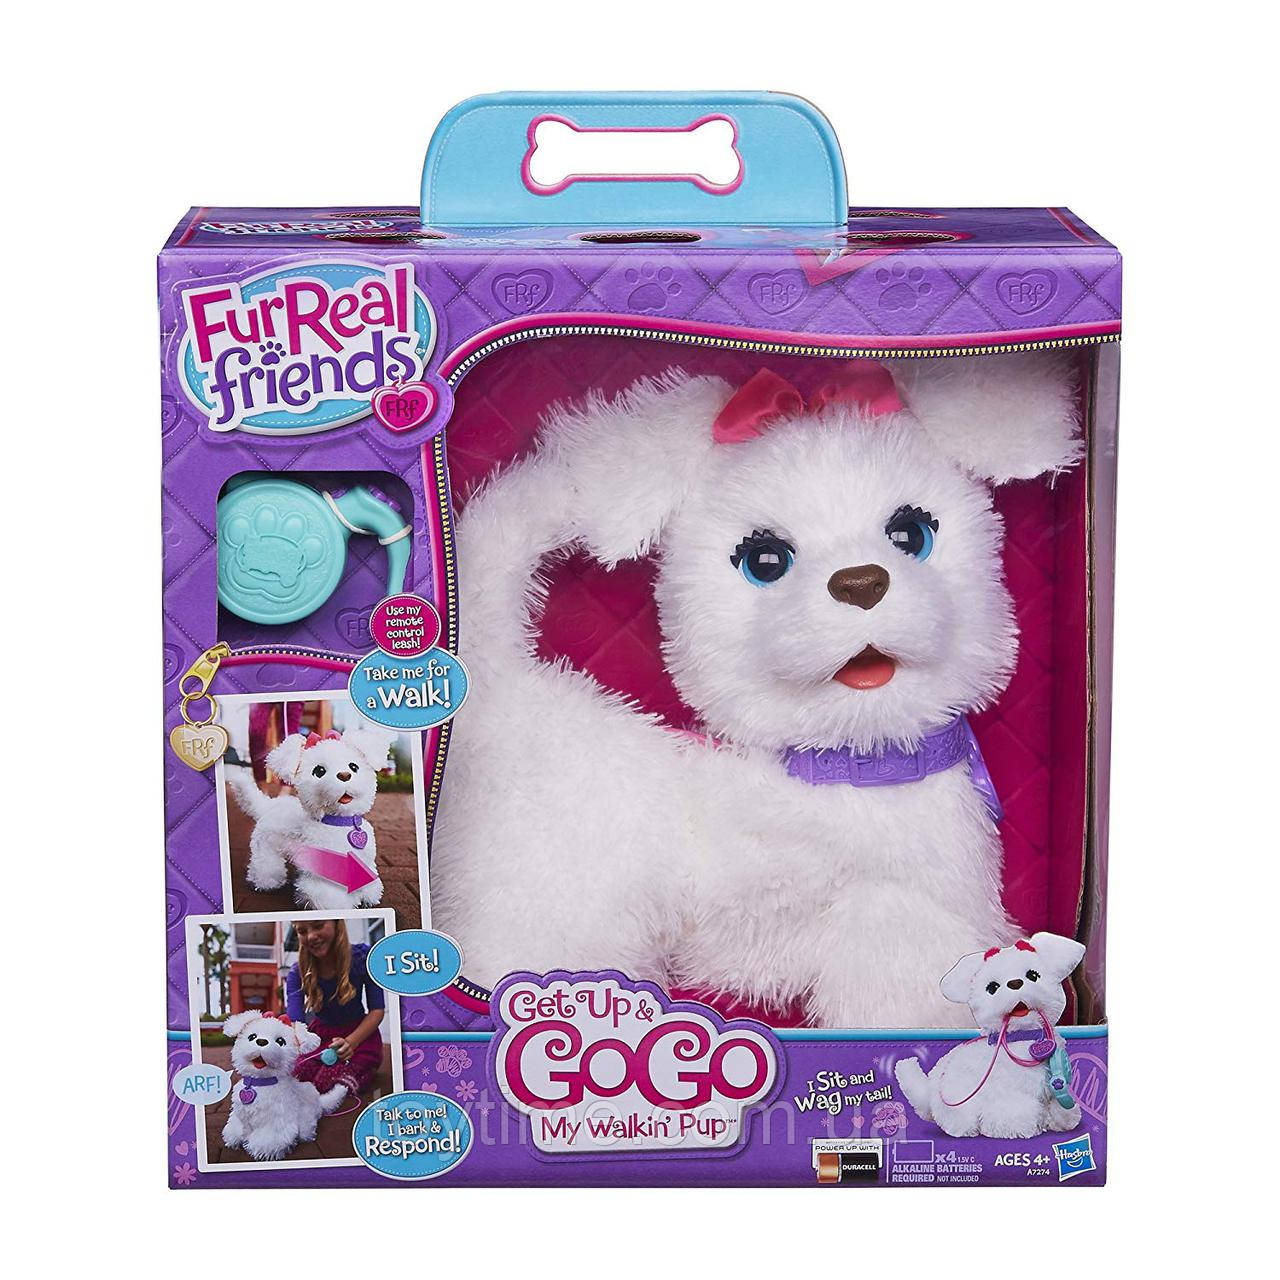 Интерактивный щенок ГоГо FurReal Friends от Hasbro / FurReal Friends Get Up & GoGo My Walkin' Pup Pet